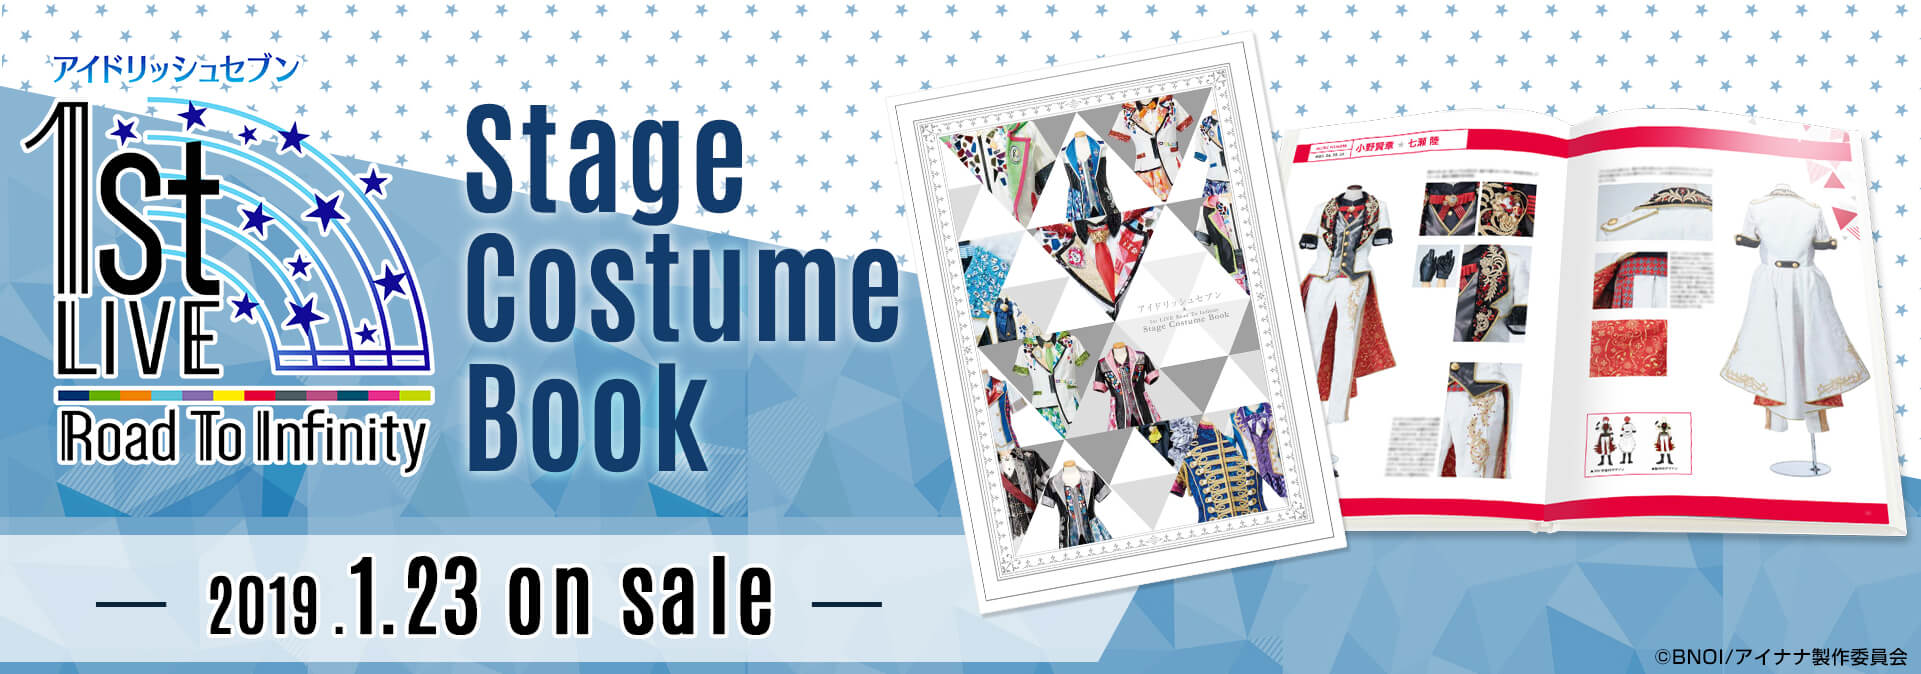 アイドリッシュセブン 1st LIVE「Road To Infinity」Stage Costume Book【2019.1.23 on sale】